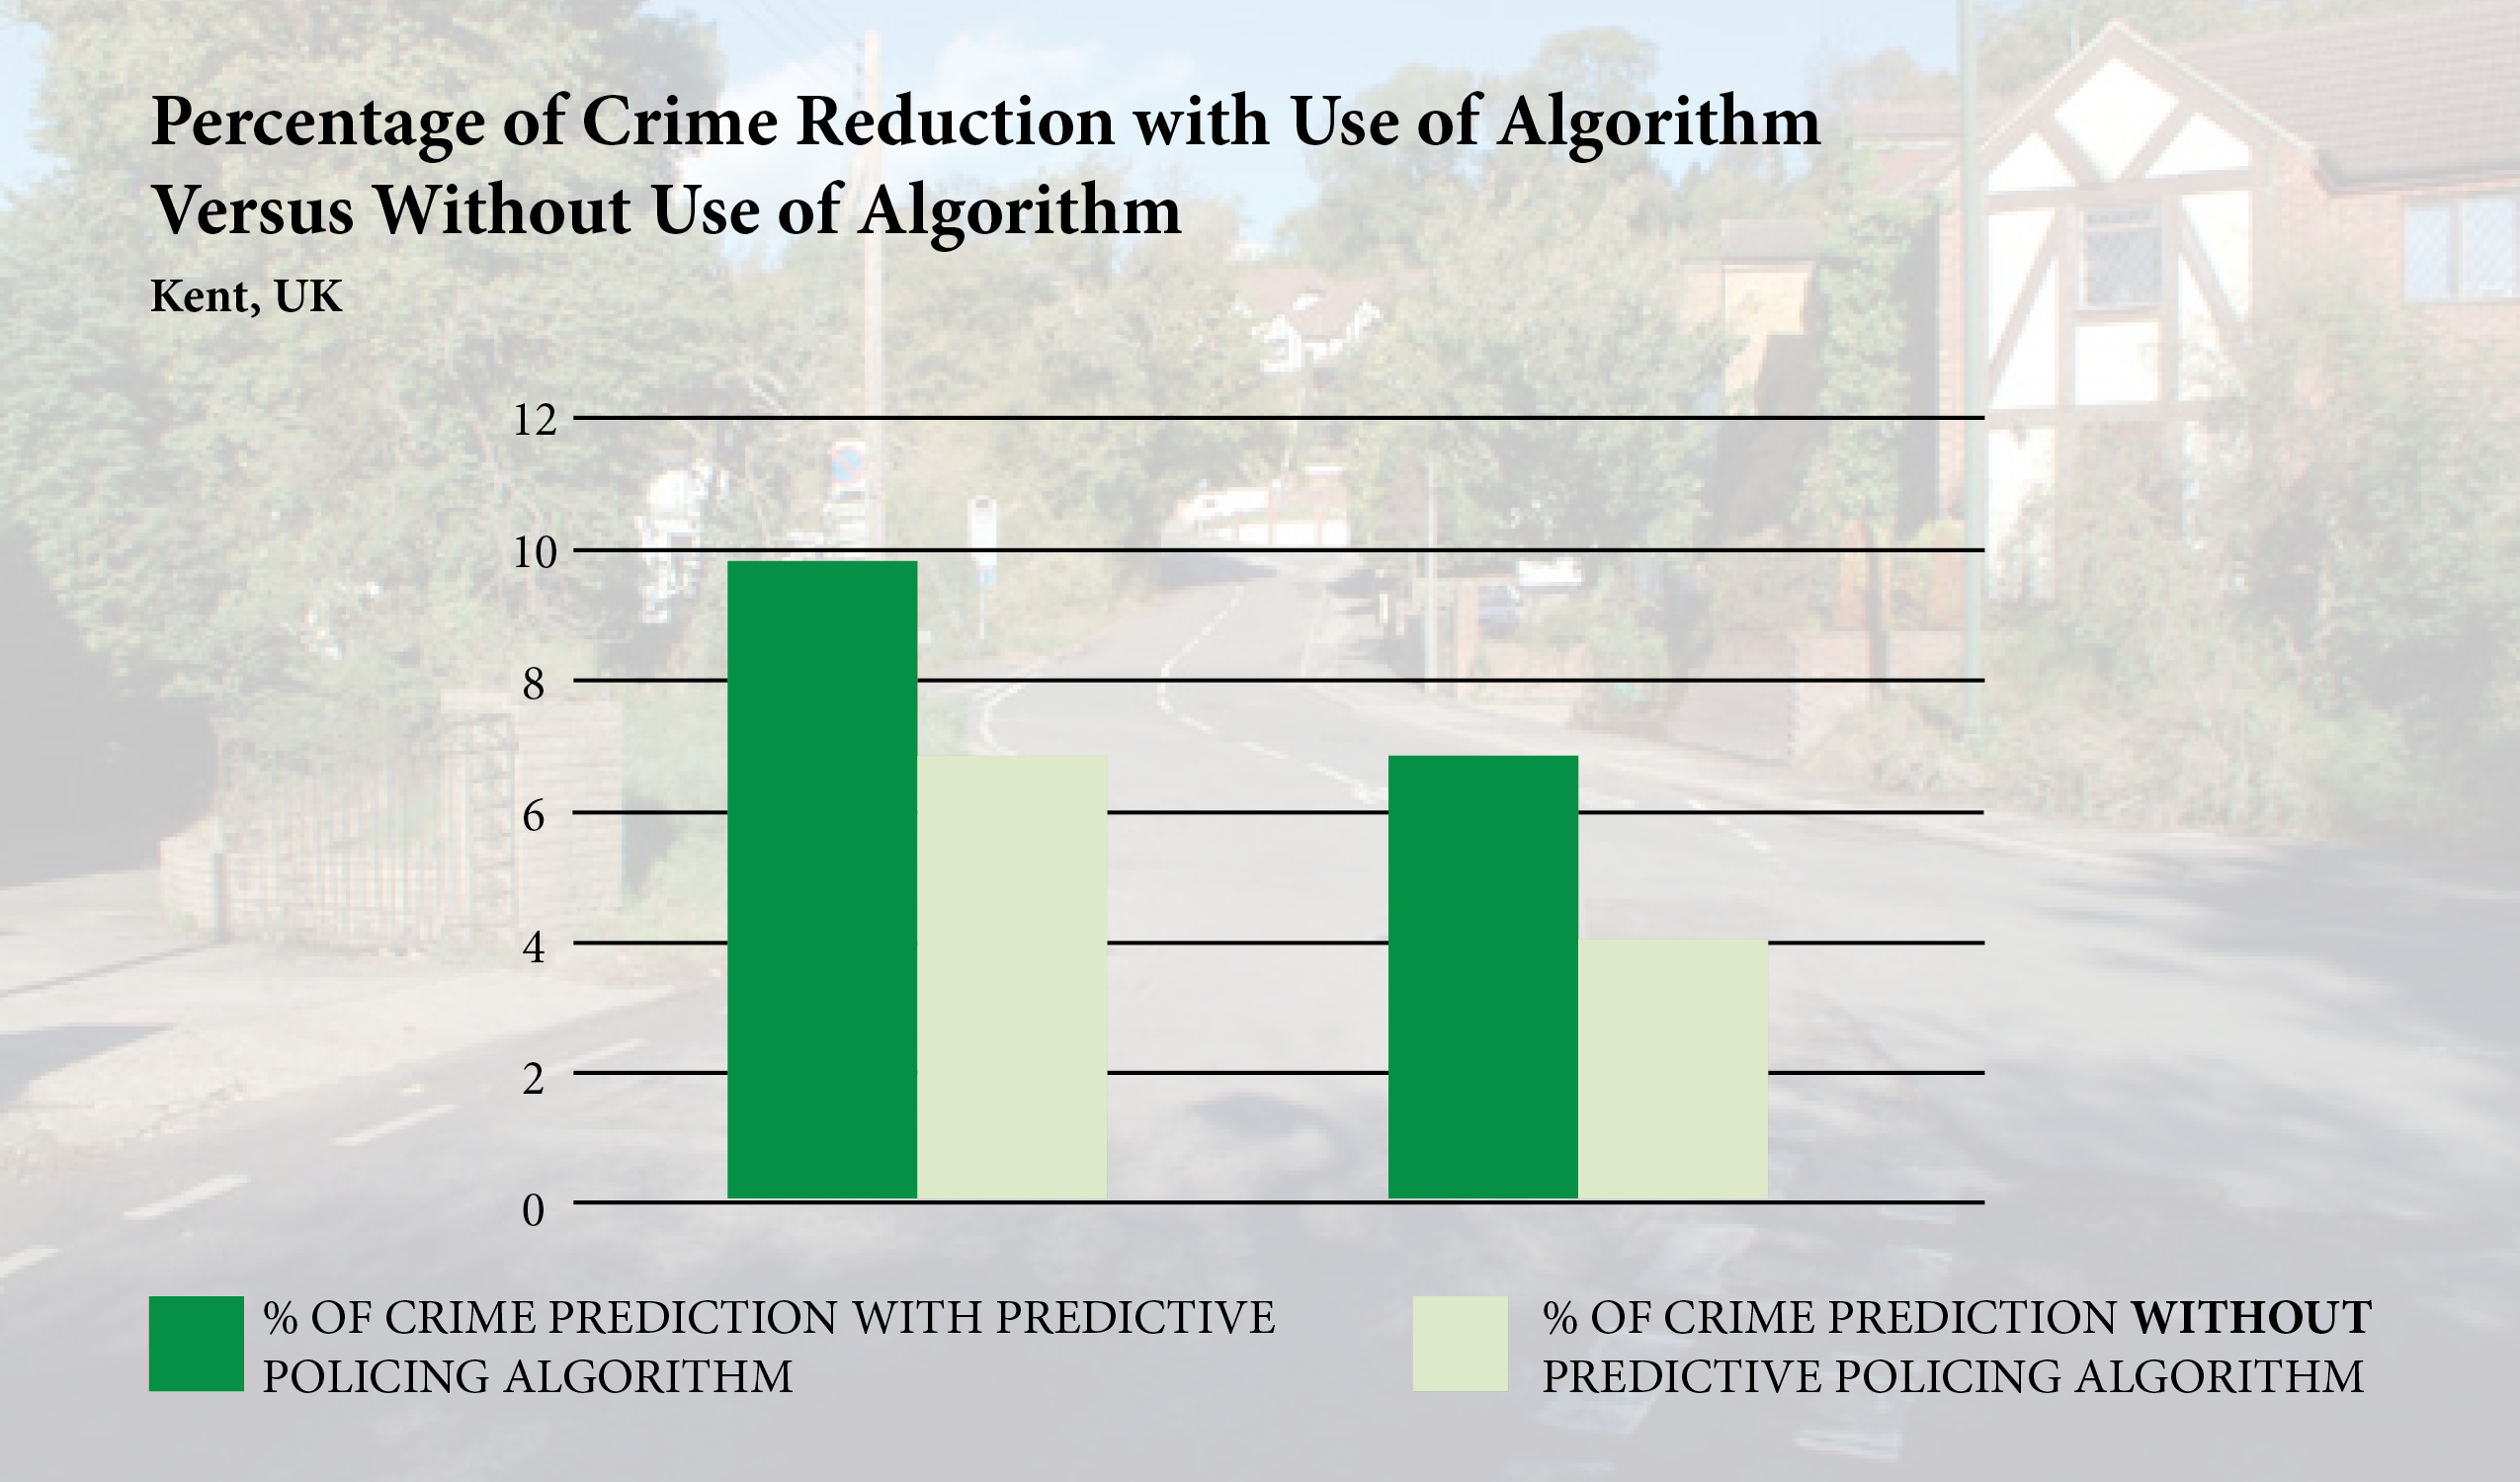 predictive policing essay Predictive policing has led to a drop in burglaries, automobile thefts, and other crimes in some cities write a four to five (45) page paper in which you compare and contrast the application of information technology (it) to optimize police departments' performance to reduce crime versus random patrols of the streets.